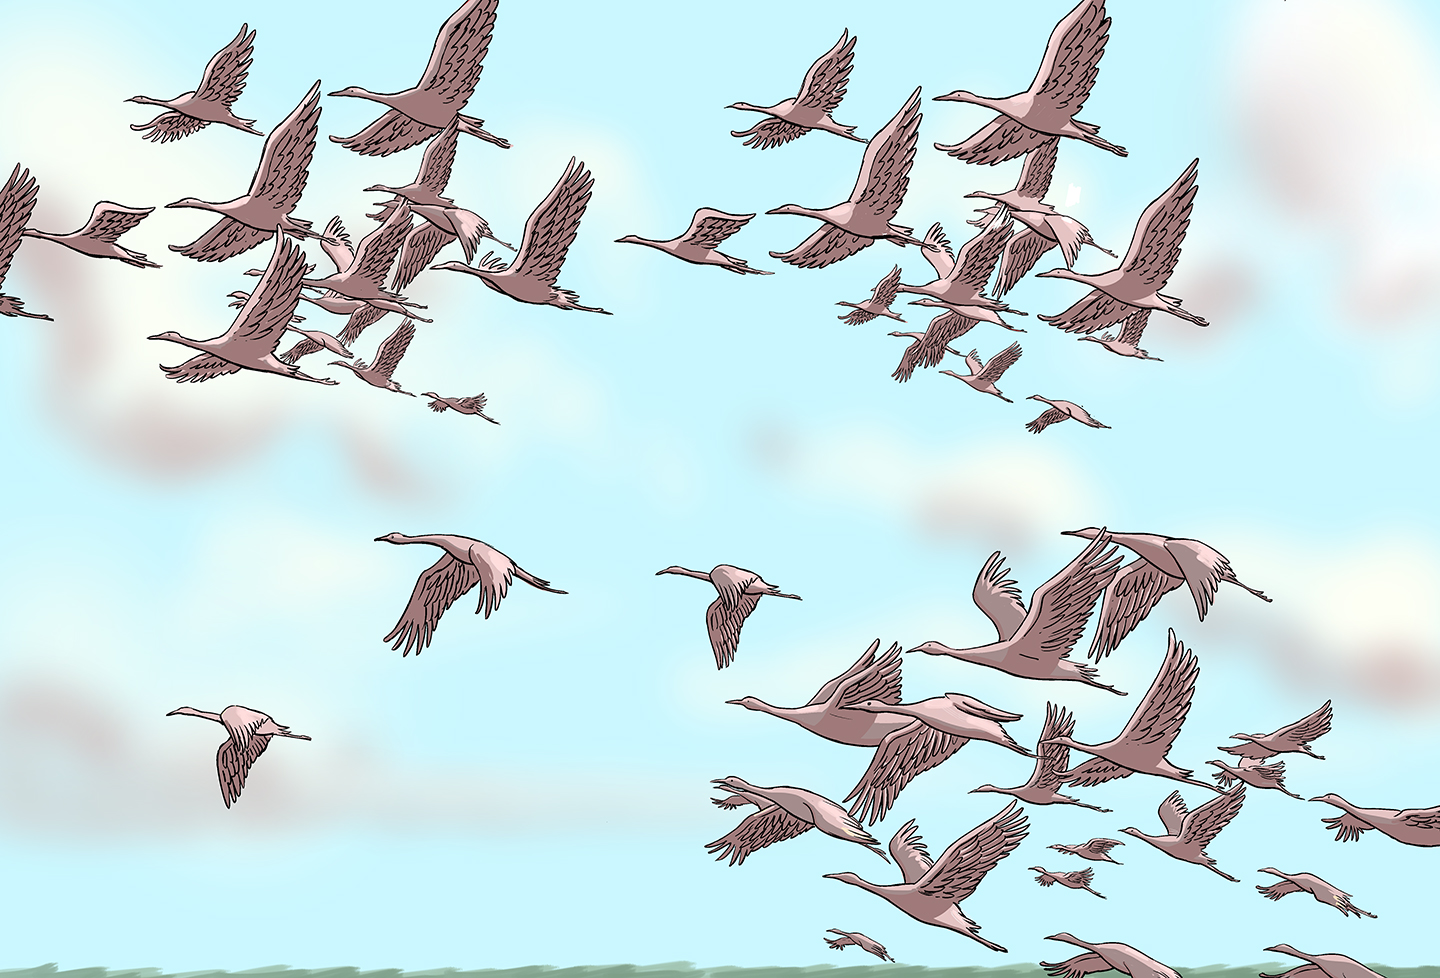 A sky full of cranes, this time grouped into three smaller flocks and several stragglers flying alone.